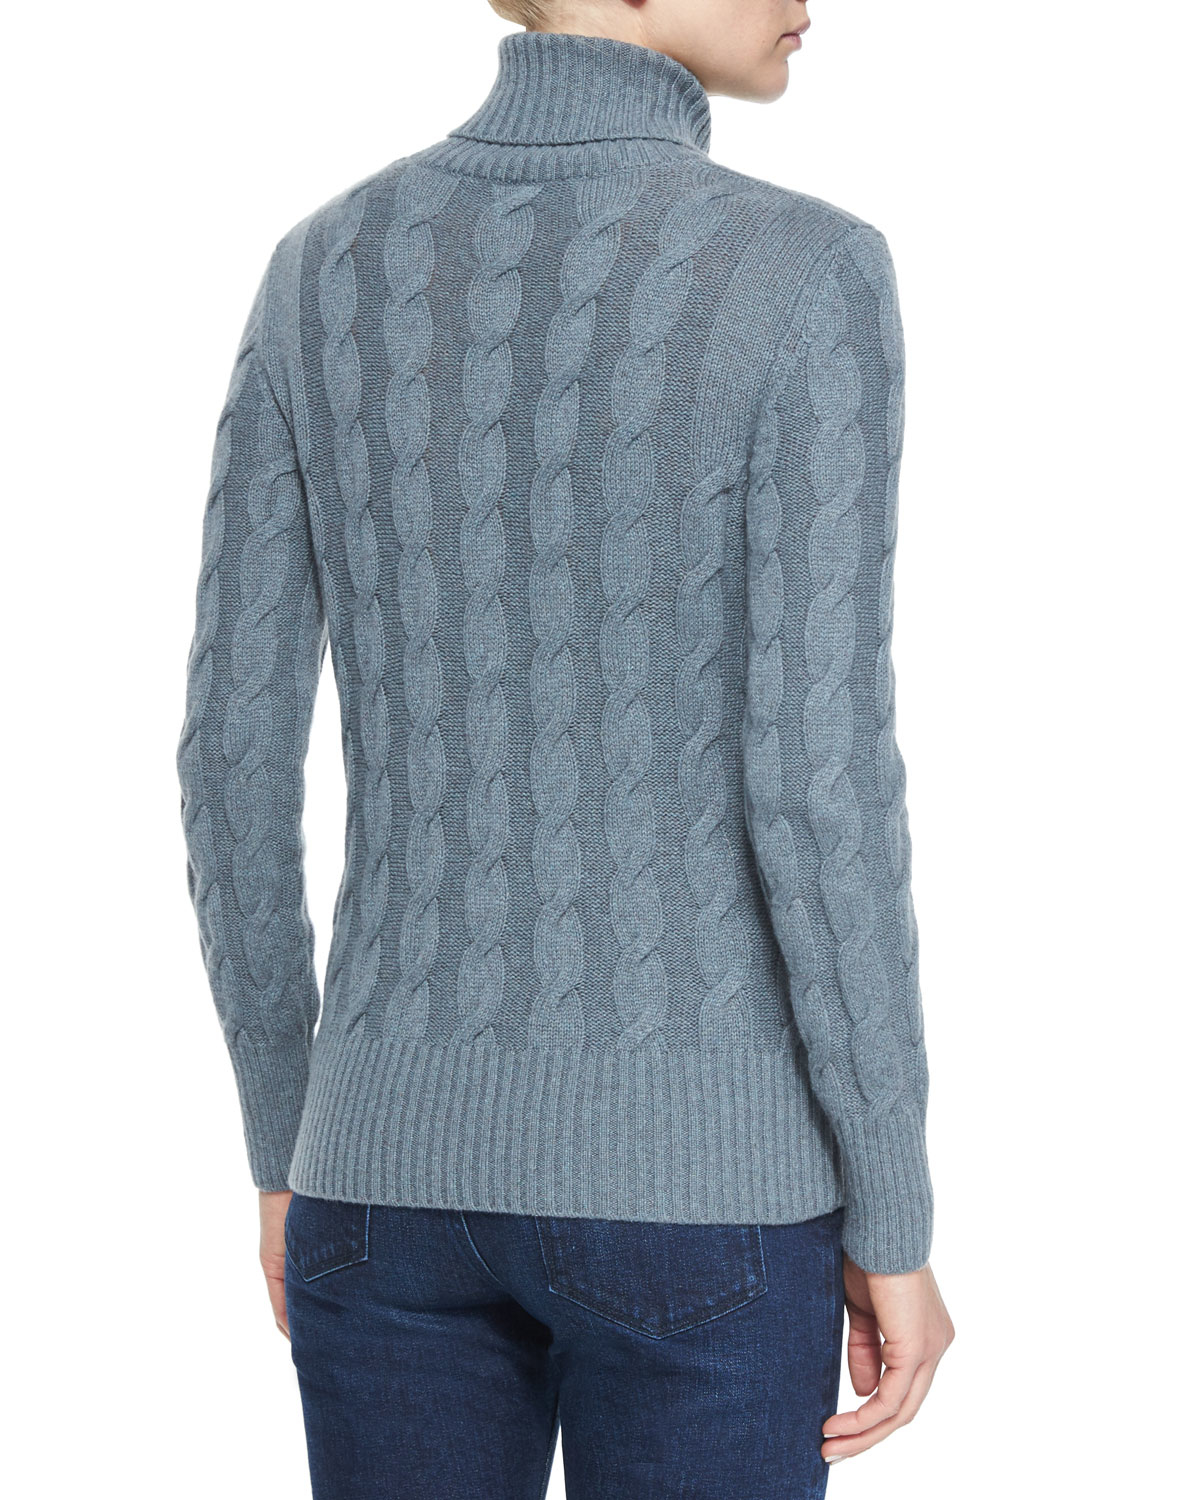 Loro Piana Cashmere Knit Cardigan Low Cost Sale Online Hyper Online Cheap 2018 Newest The Cheapest For Sale Original Cheap Price 42TV6